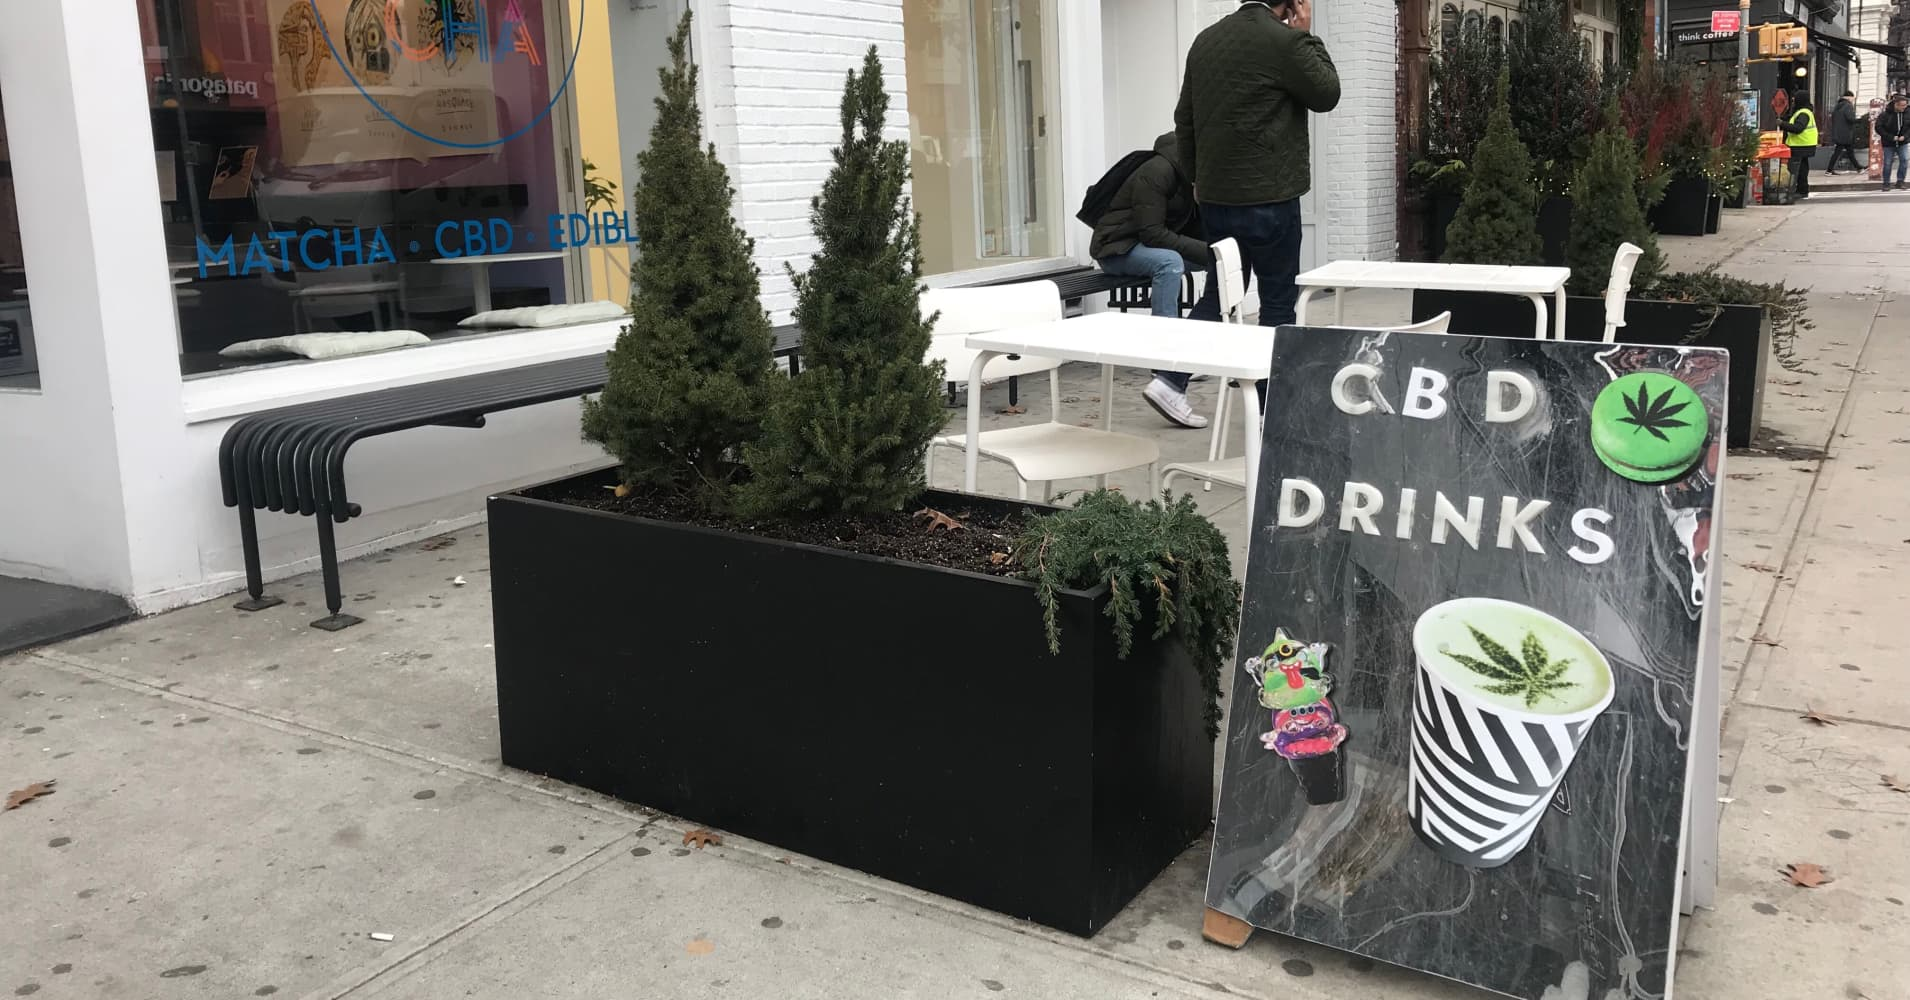 New York orders restaurants to stop serving weed-related CBD